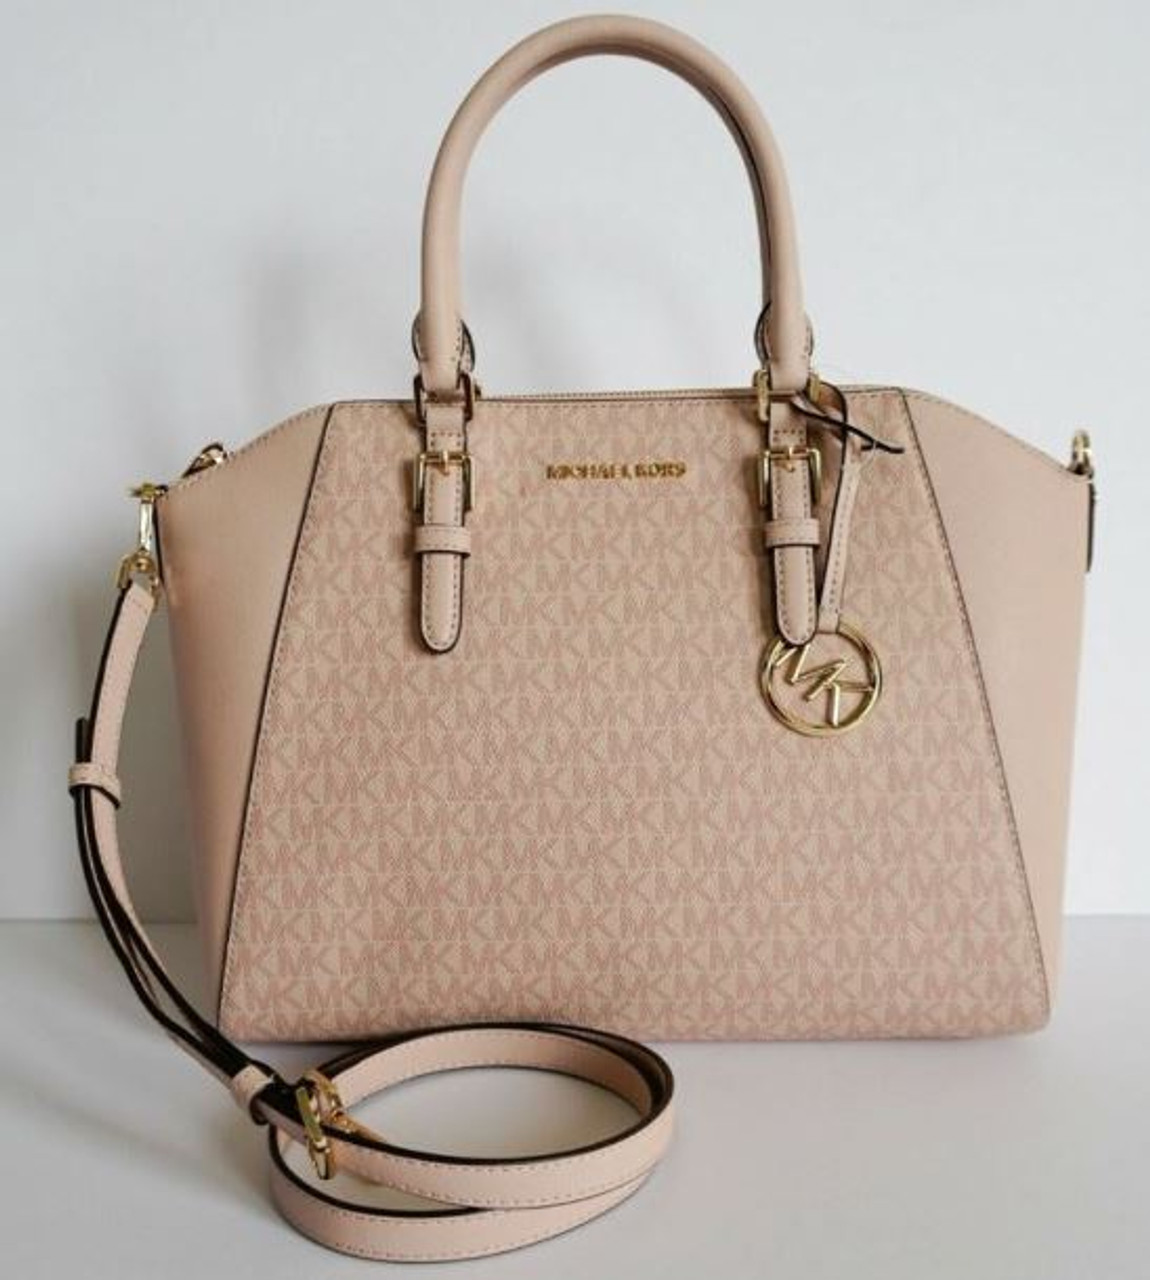 Michael Kors Ciara Large Top Zip Satchel (BALLET) 35S9GC6S3B 857